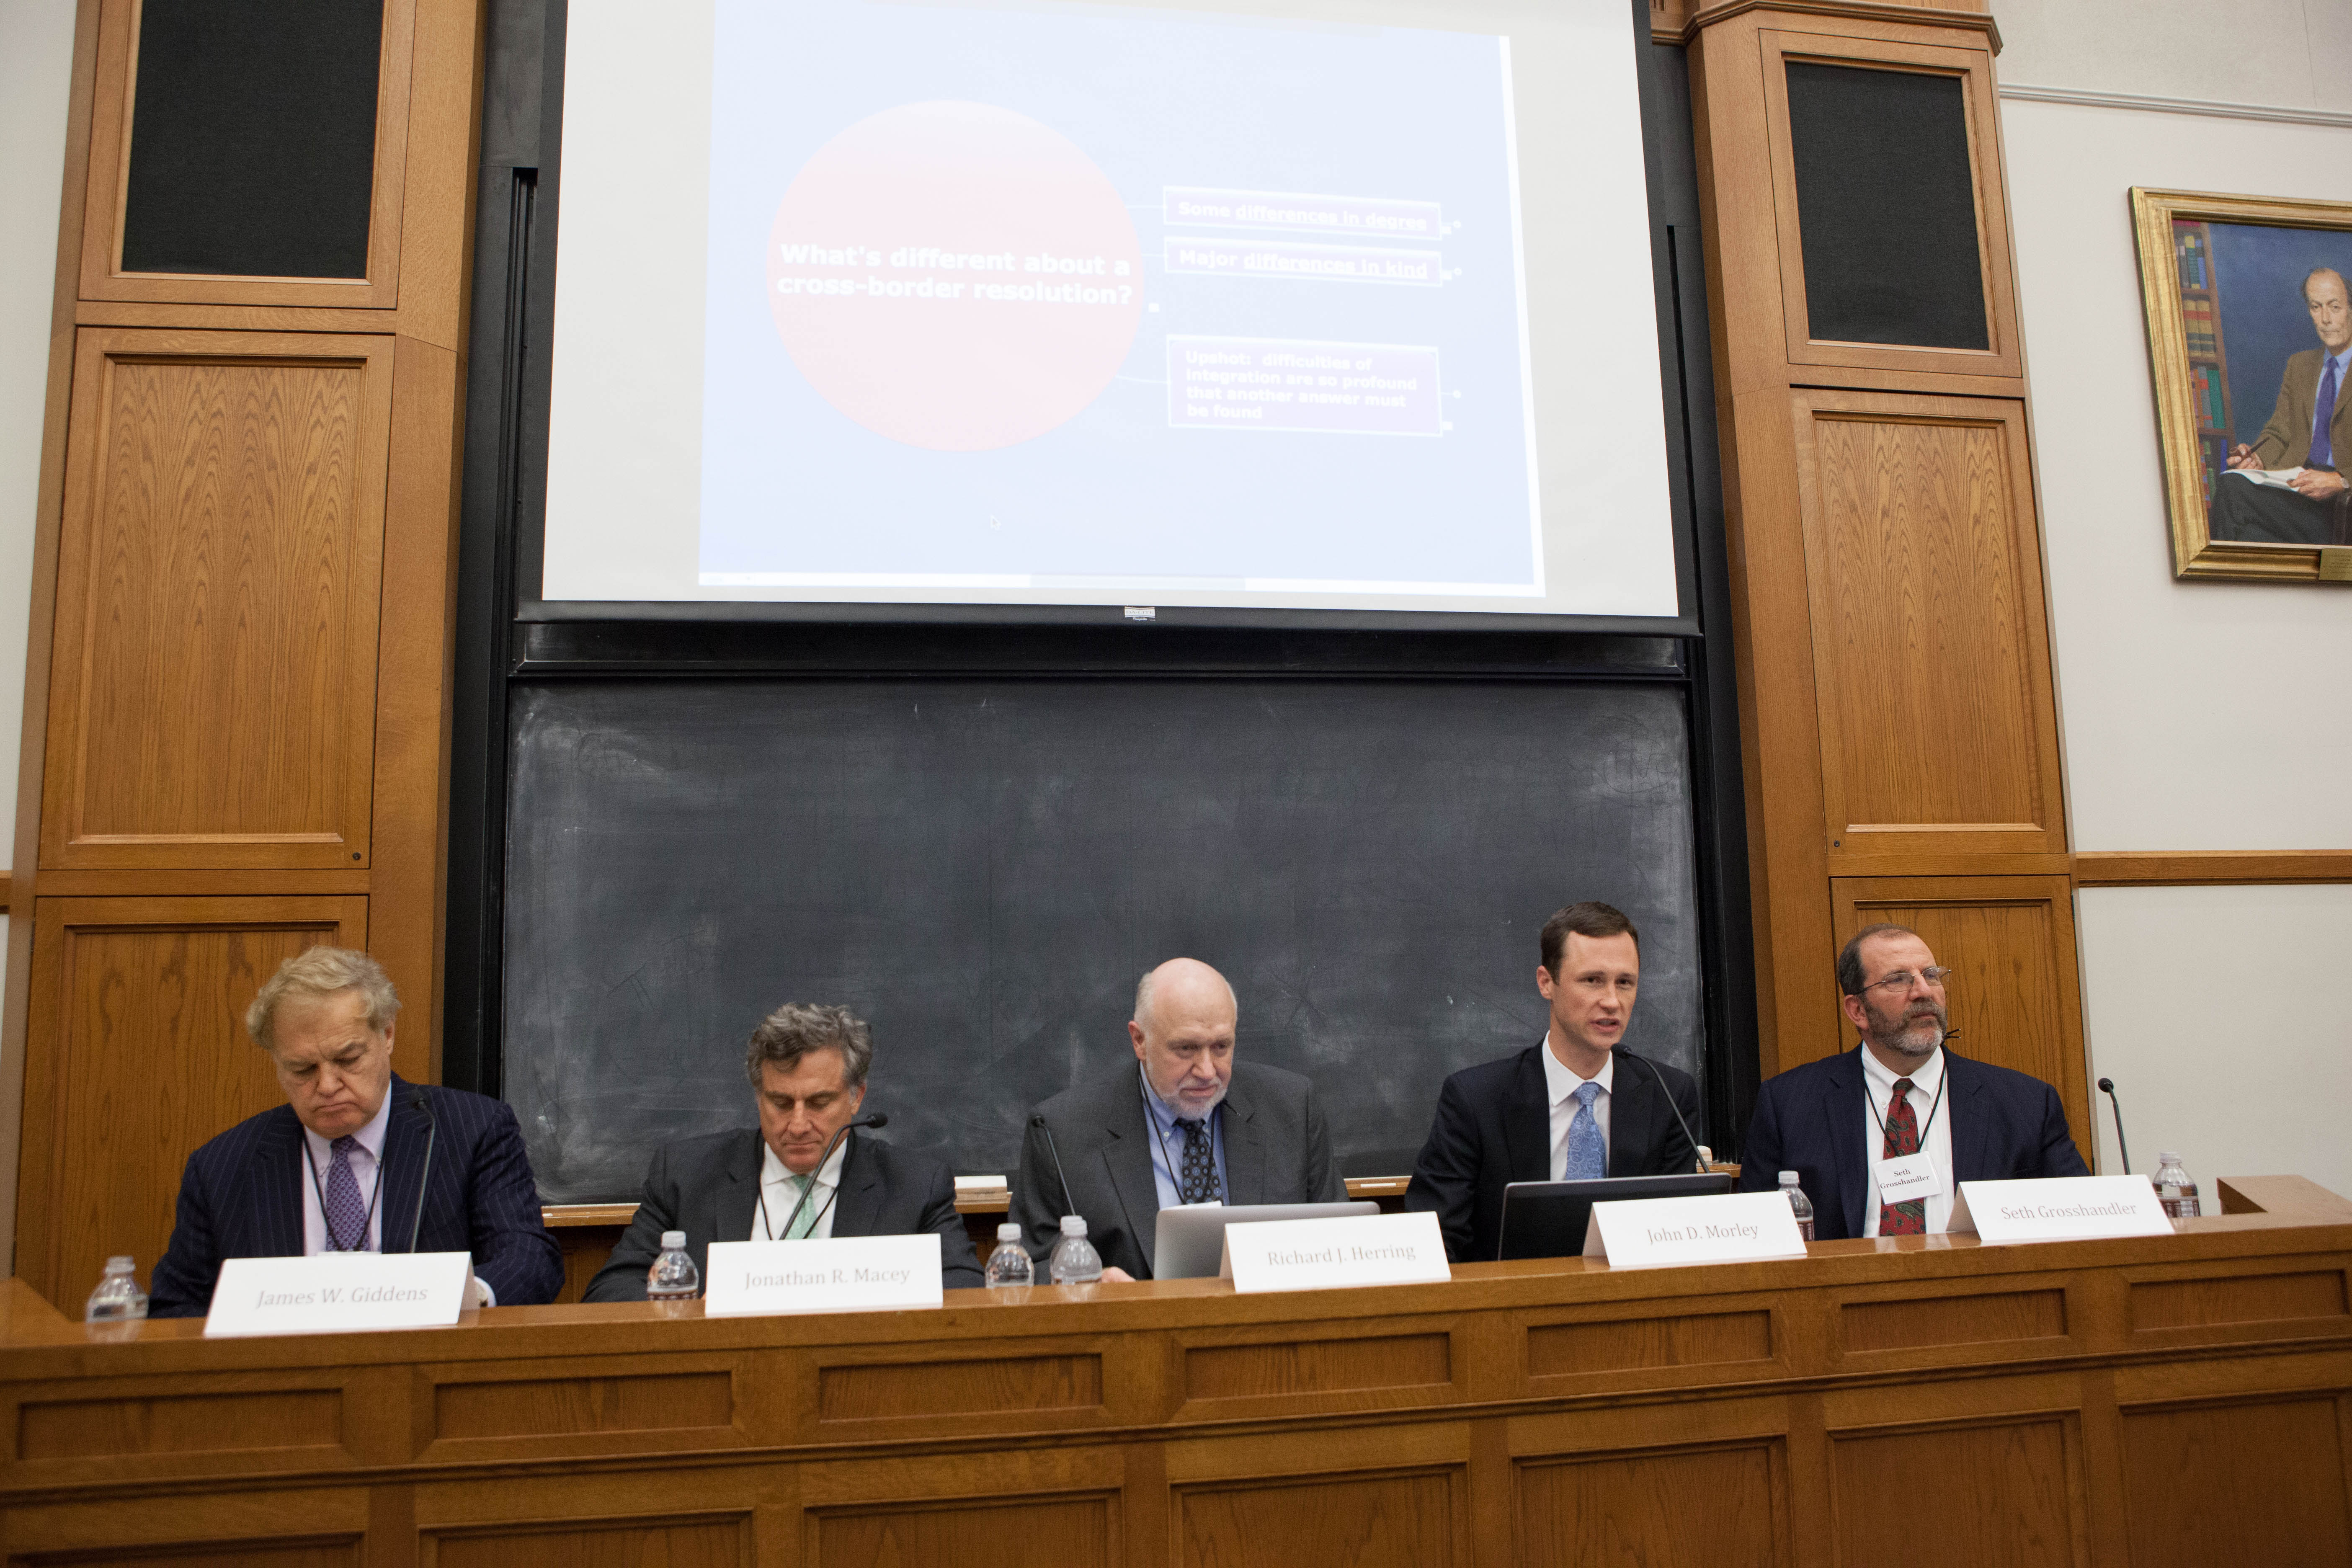 James W. Giddens '66, YLS Prof. Jonathan Macey '82, Wharton Prof. Richard Herring, YLS Prof. John Morley '06, and Seth Grosshandler